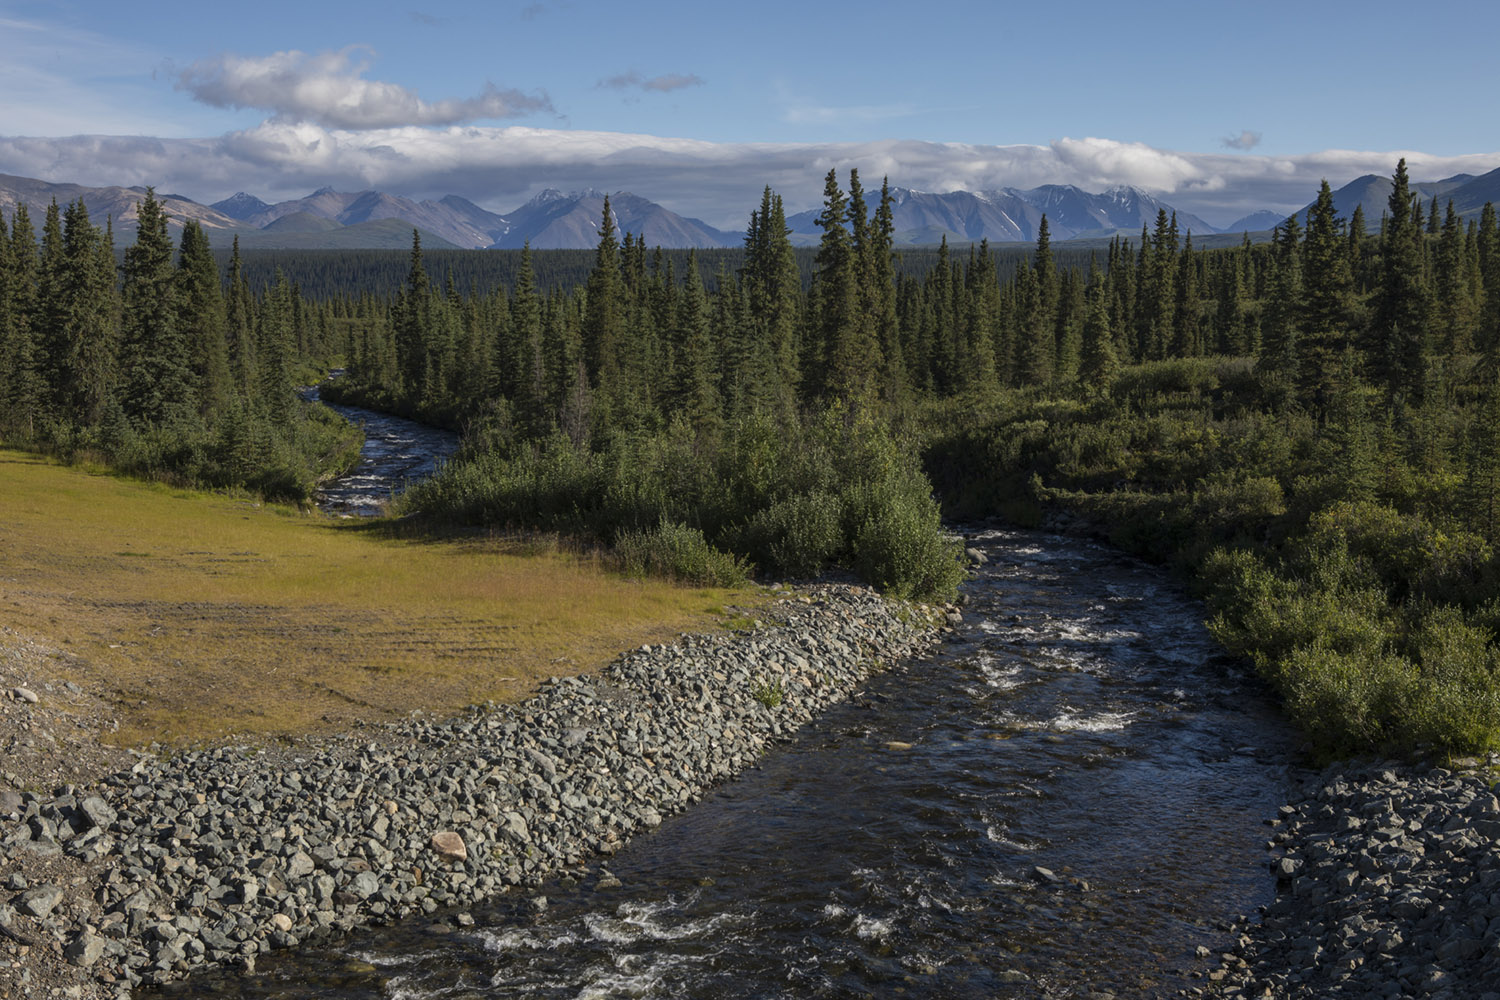 Alaska, denali, national park, state park, wilderness, nature, bart coolen, photography